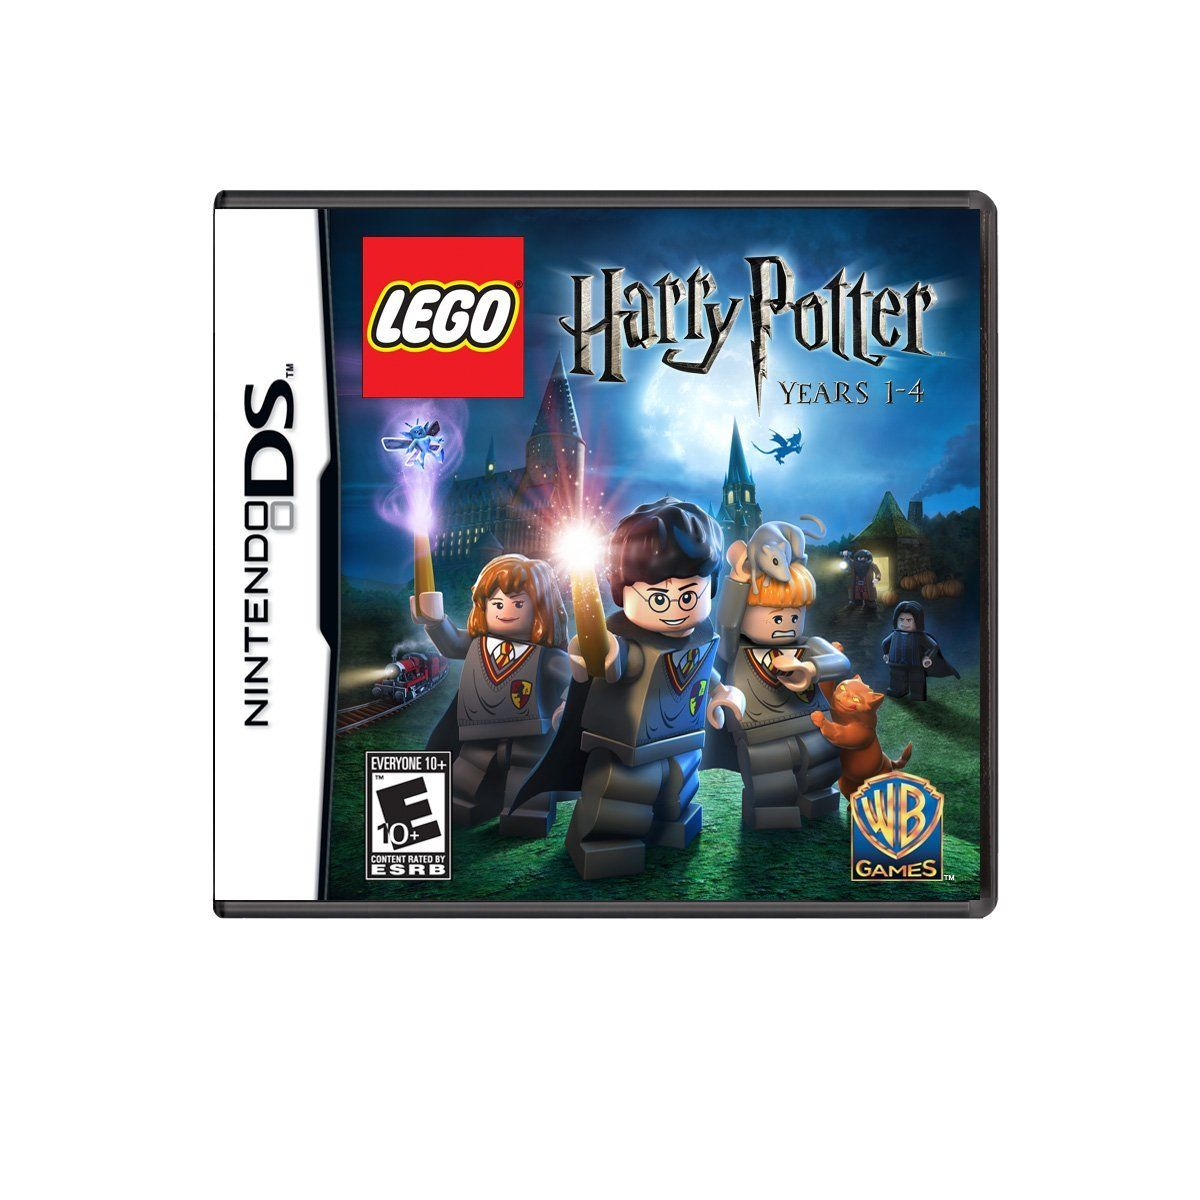 Amazon Duck Dynasty Season 1 2 Or 3 Only 4 99 Reg 19 98 Become A Coupon Queen Lego Harry Potter Harry Potter Years Harry Potter Stories